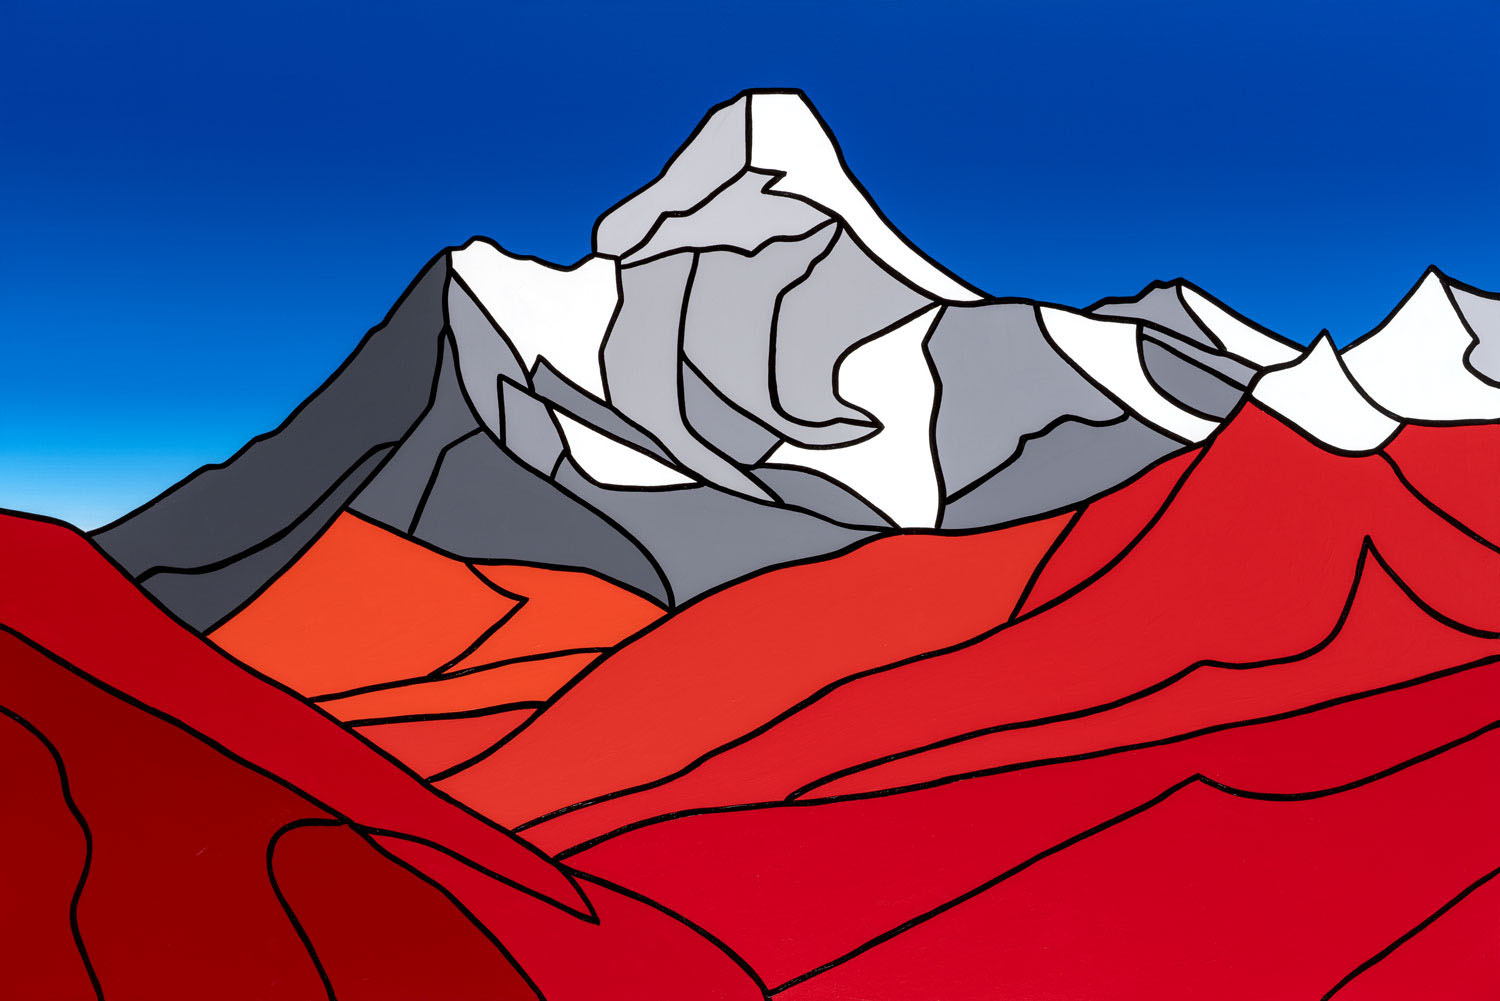 "The Mountain, Fall   60"" x 40"" Acrylic on Canvas  Jason Carter, 2018  SOLD"